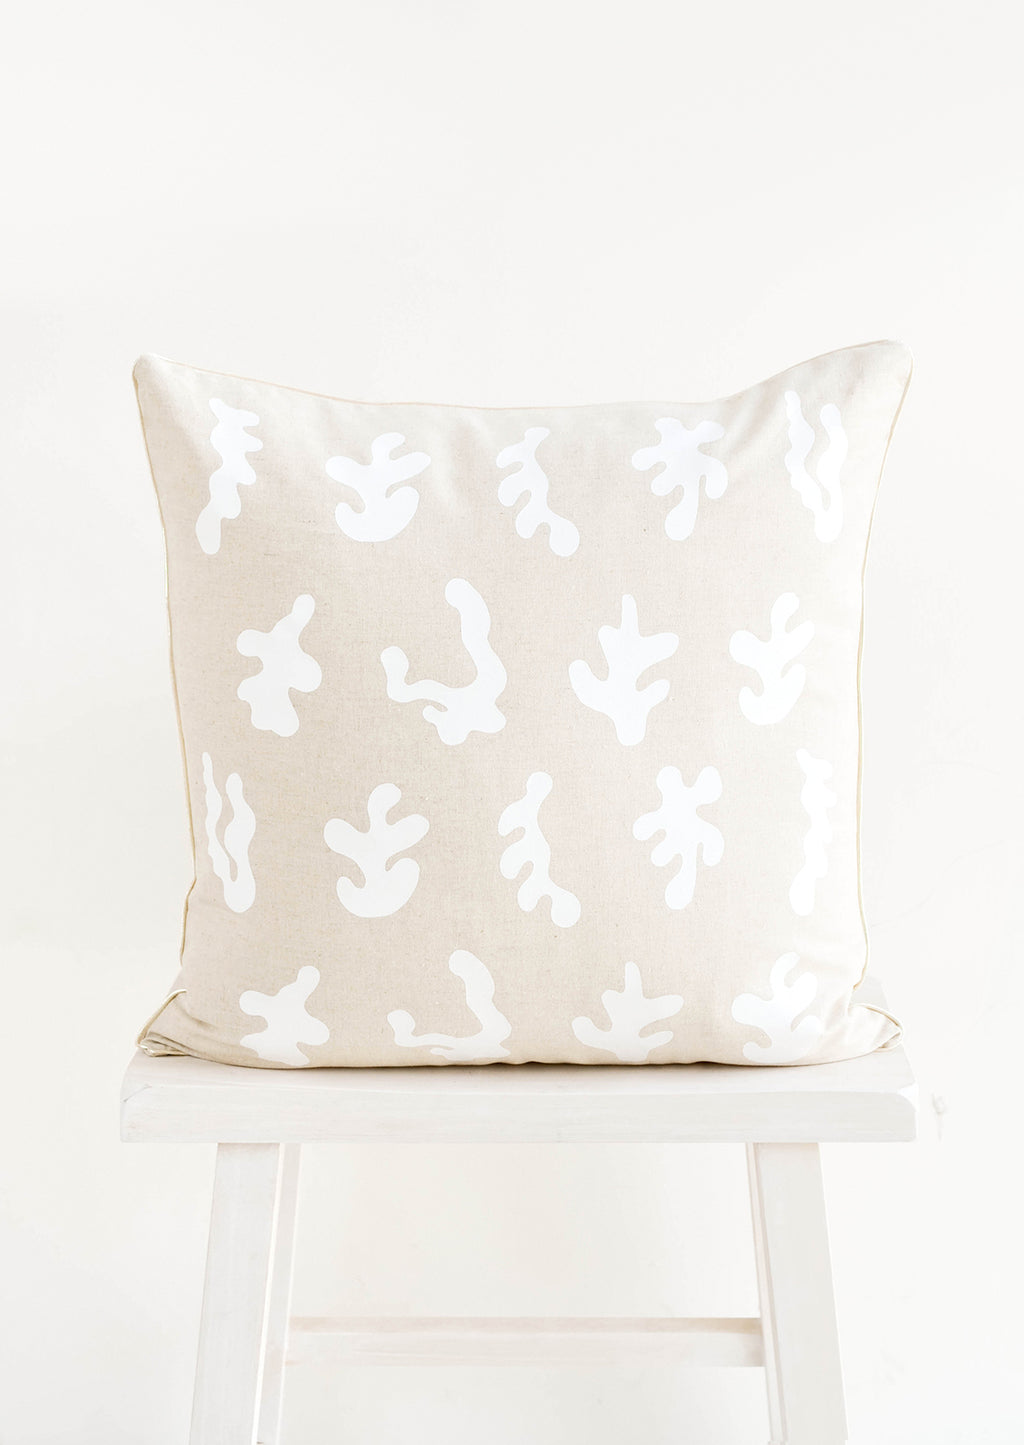 1: Square throw pillow in natural linen color with white, screen printed seaweed shapes